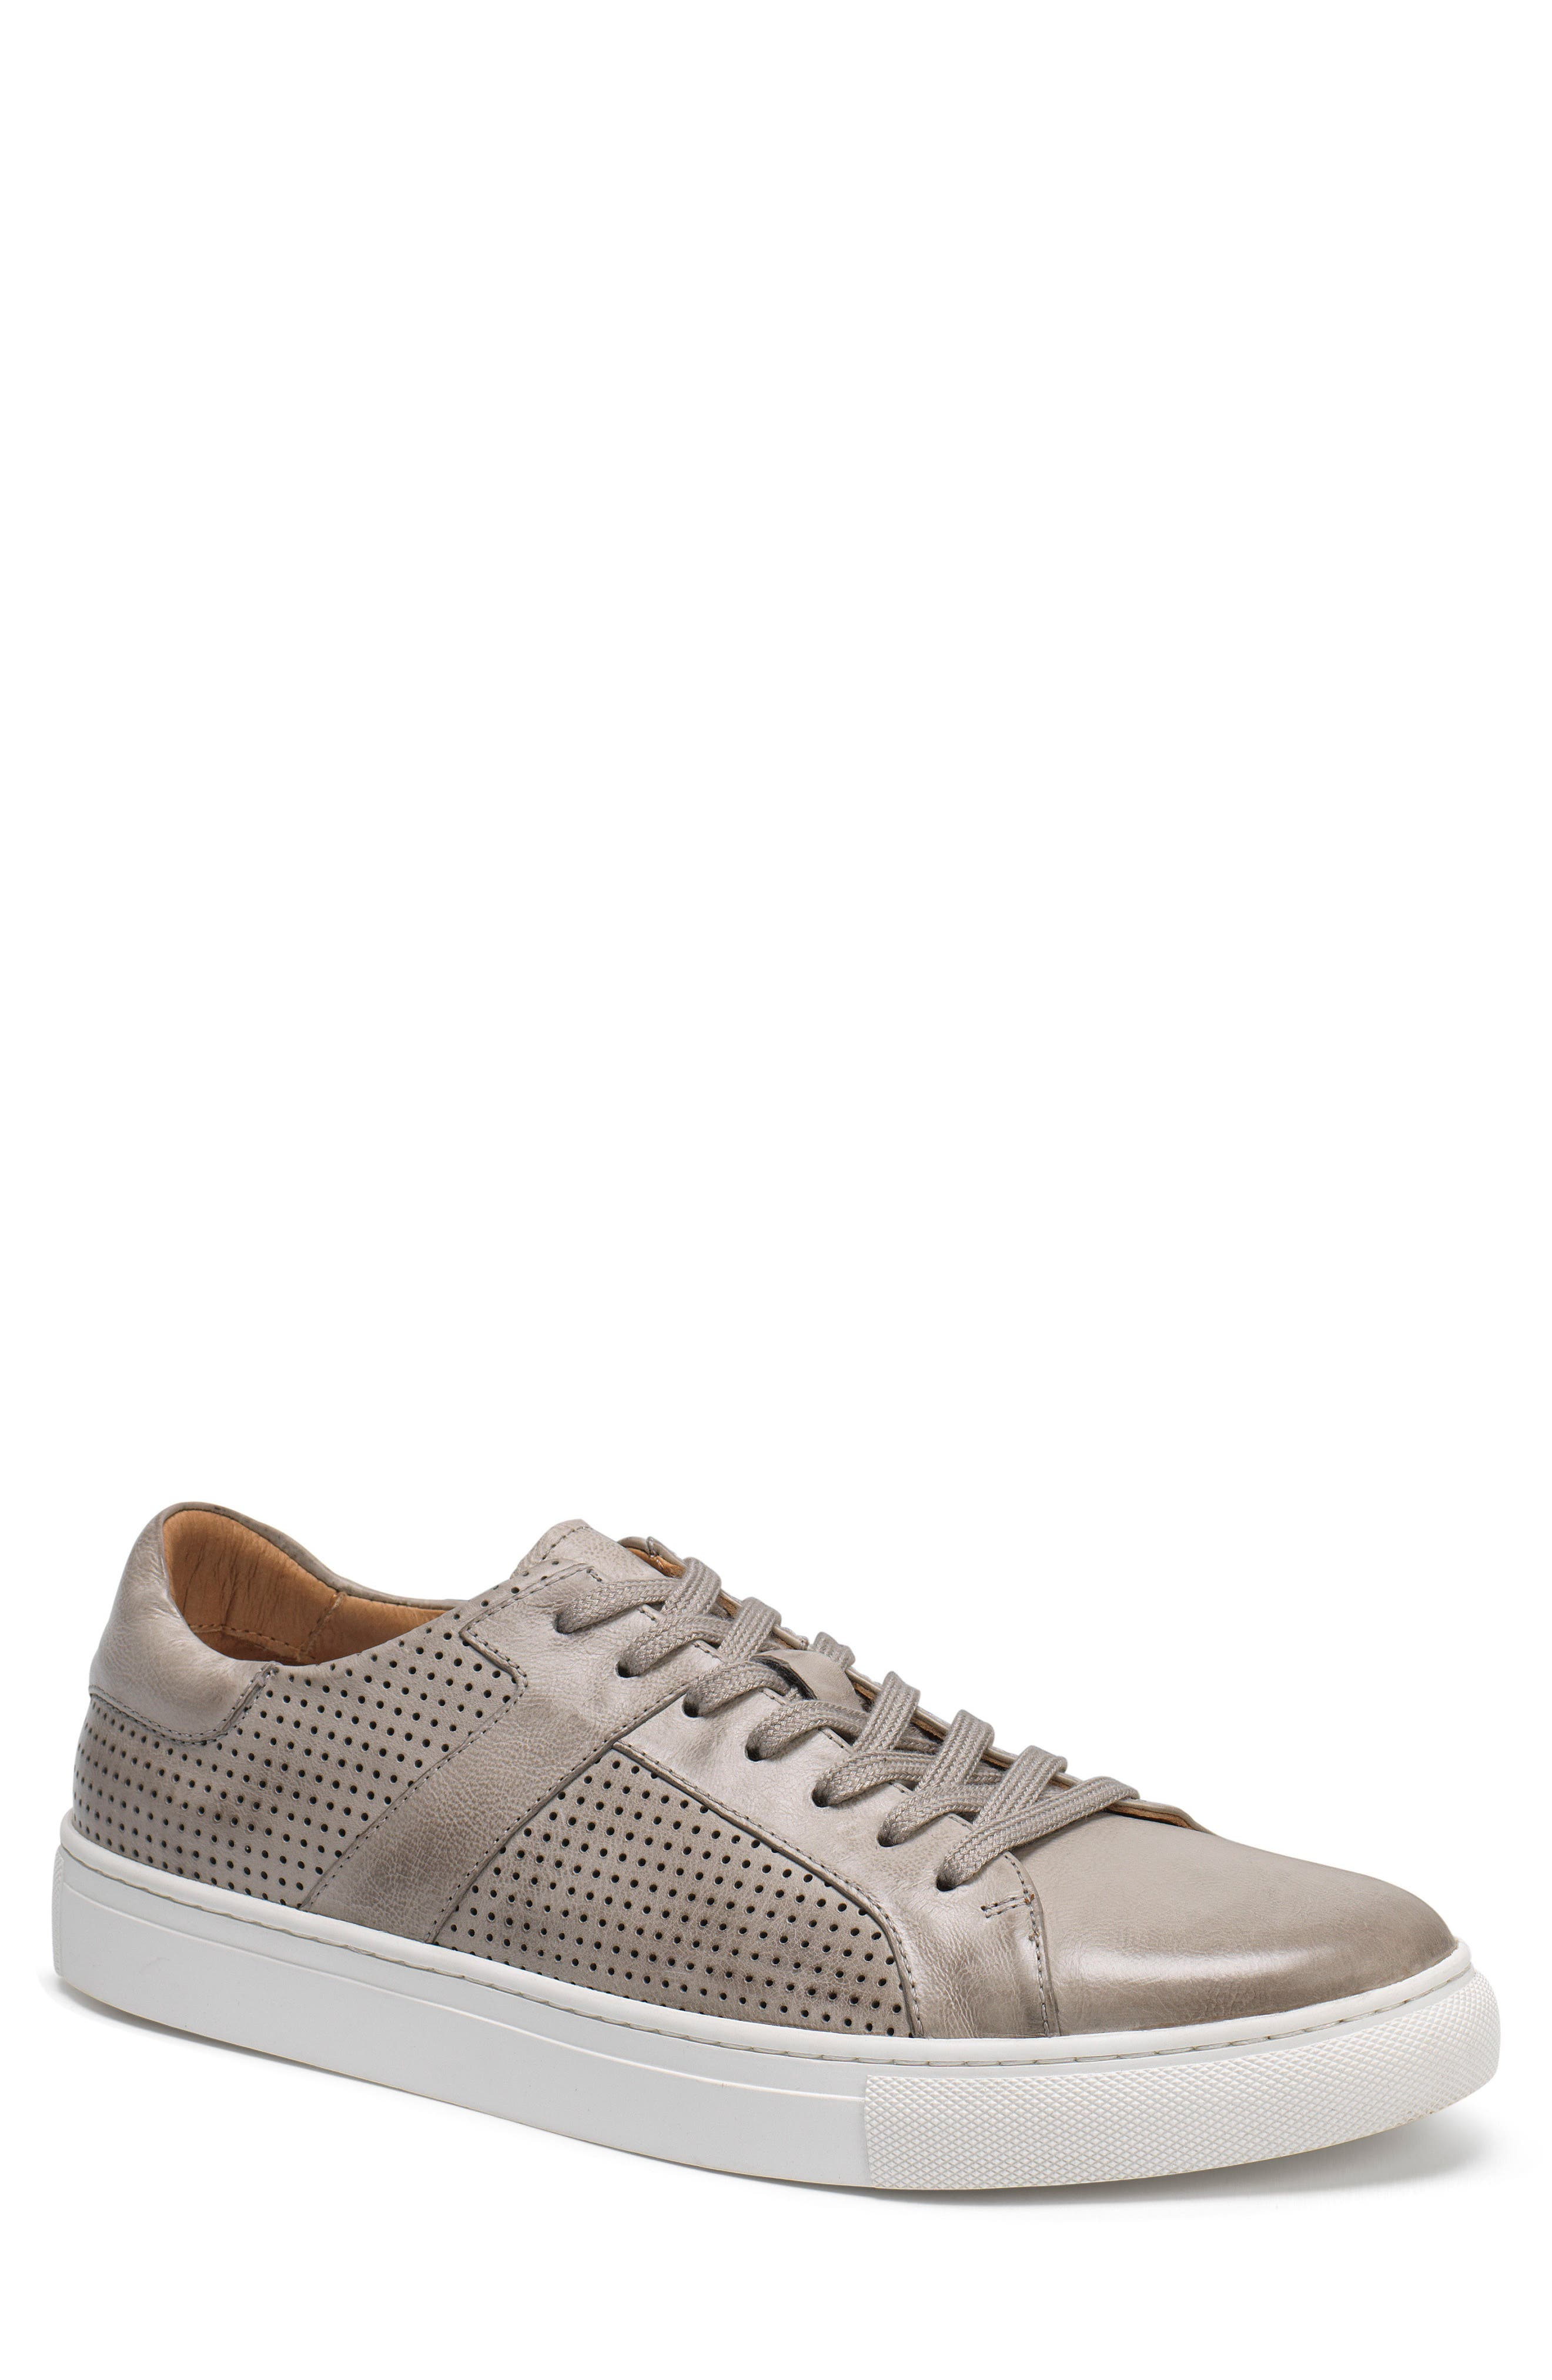 TRASK Aaron Sneaker, Main, color, LIGHT GREY LEATHER